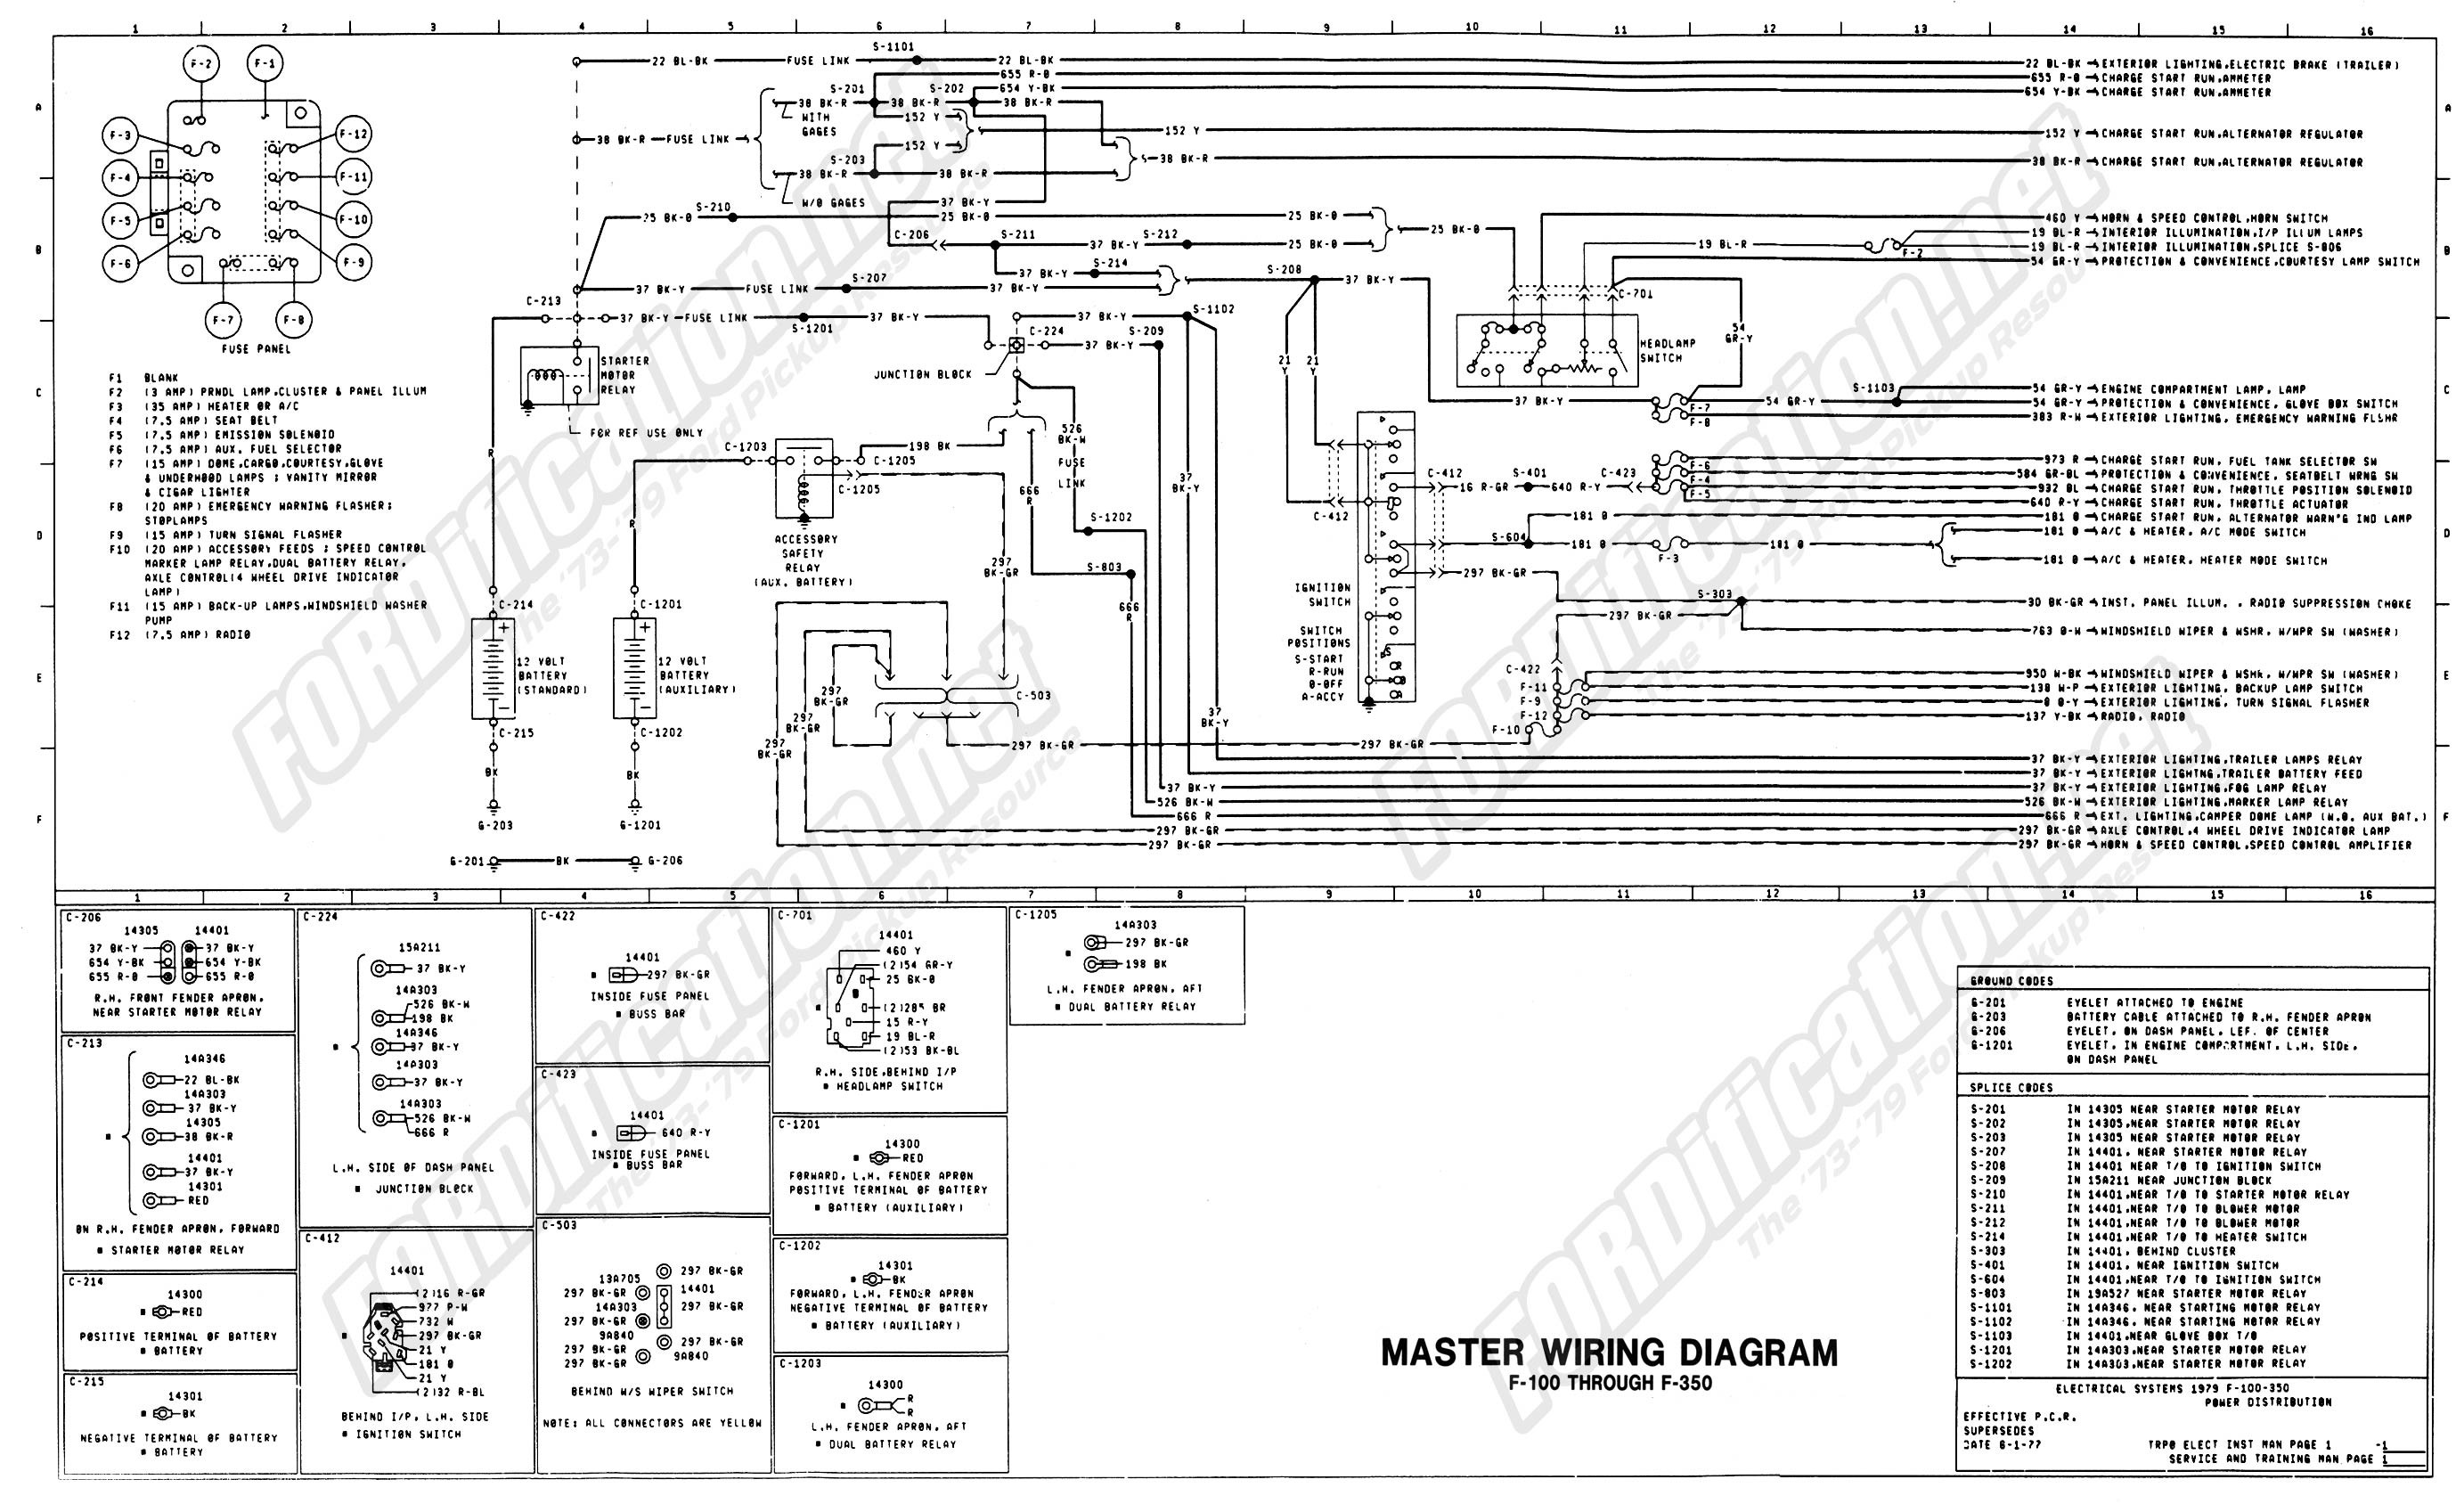 2003 Toyota Tacoma Tail Light Wiring Diagram Car 2002 Avalon Harness F150 Further 1970 Ford Torino Ignition